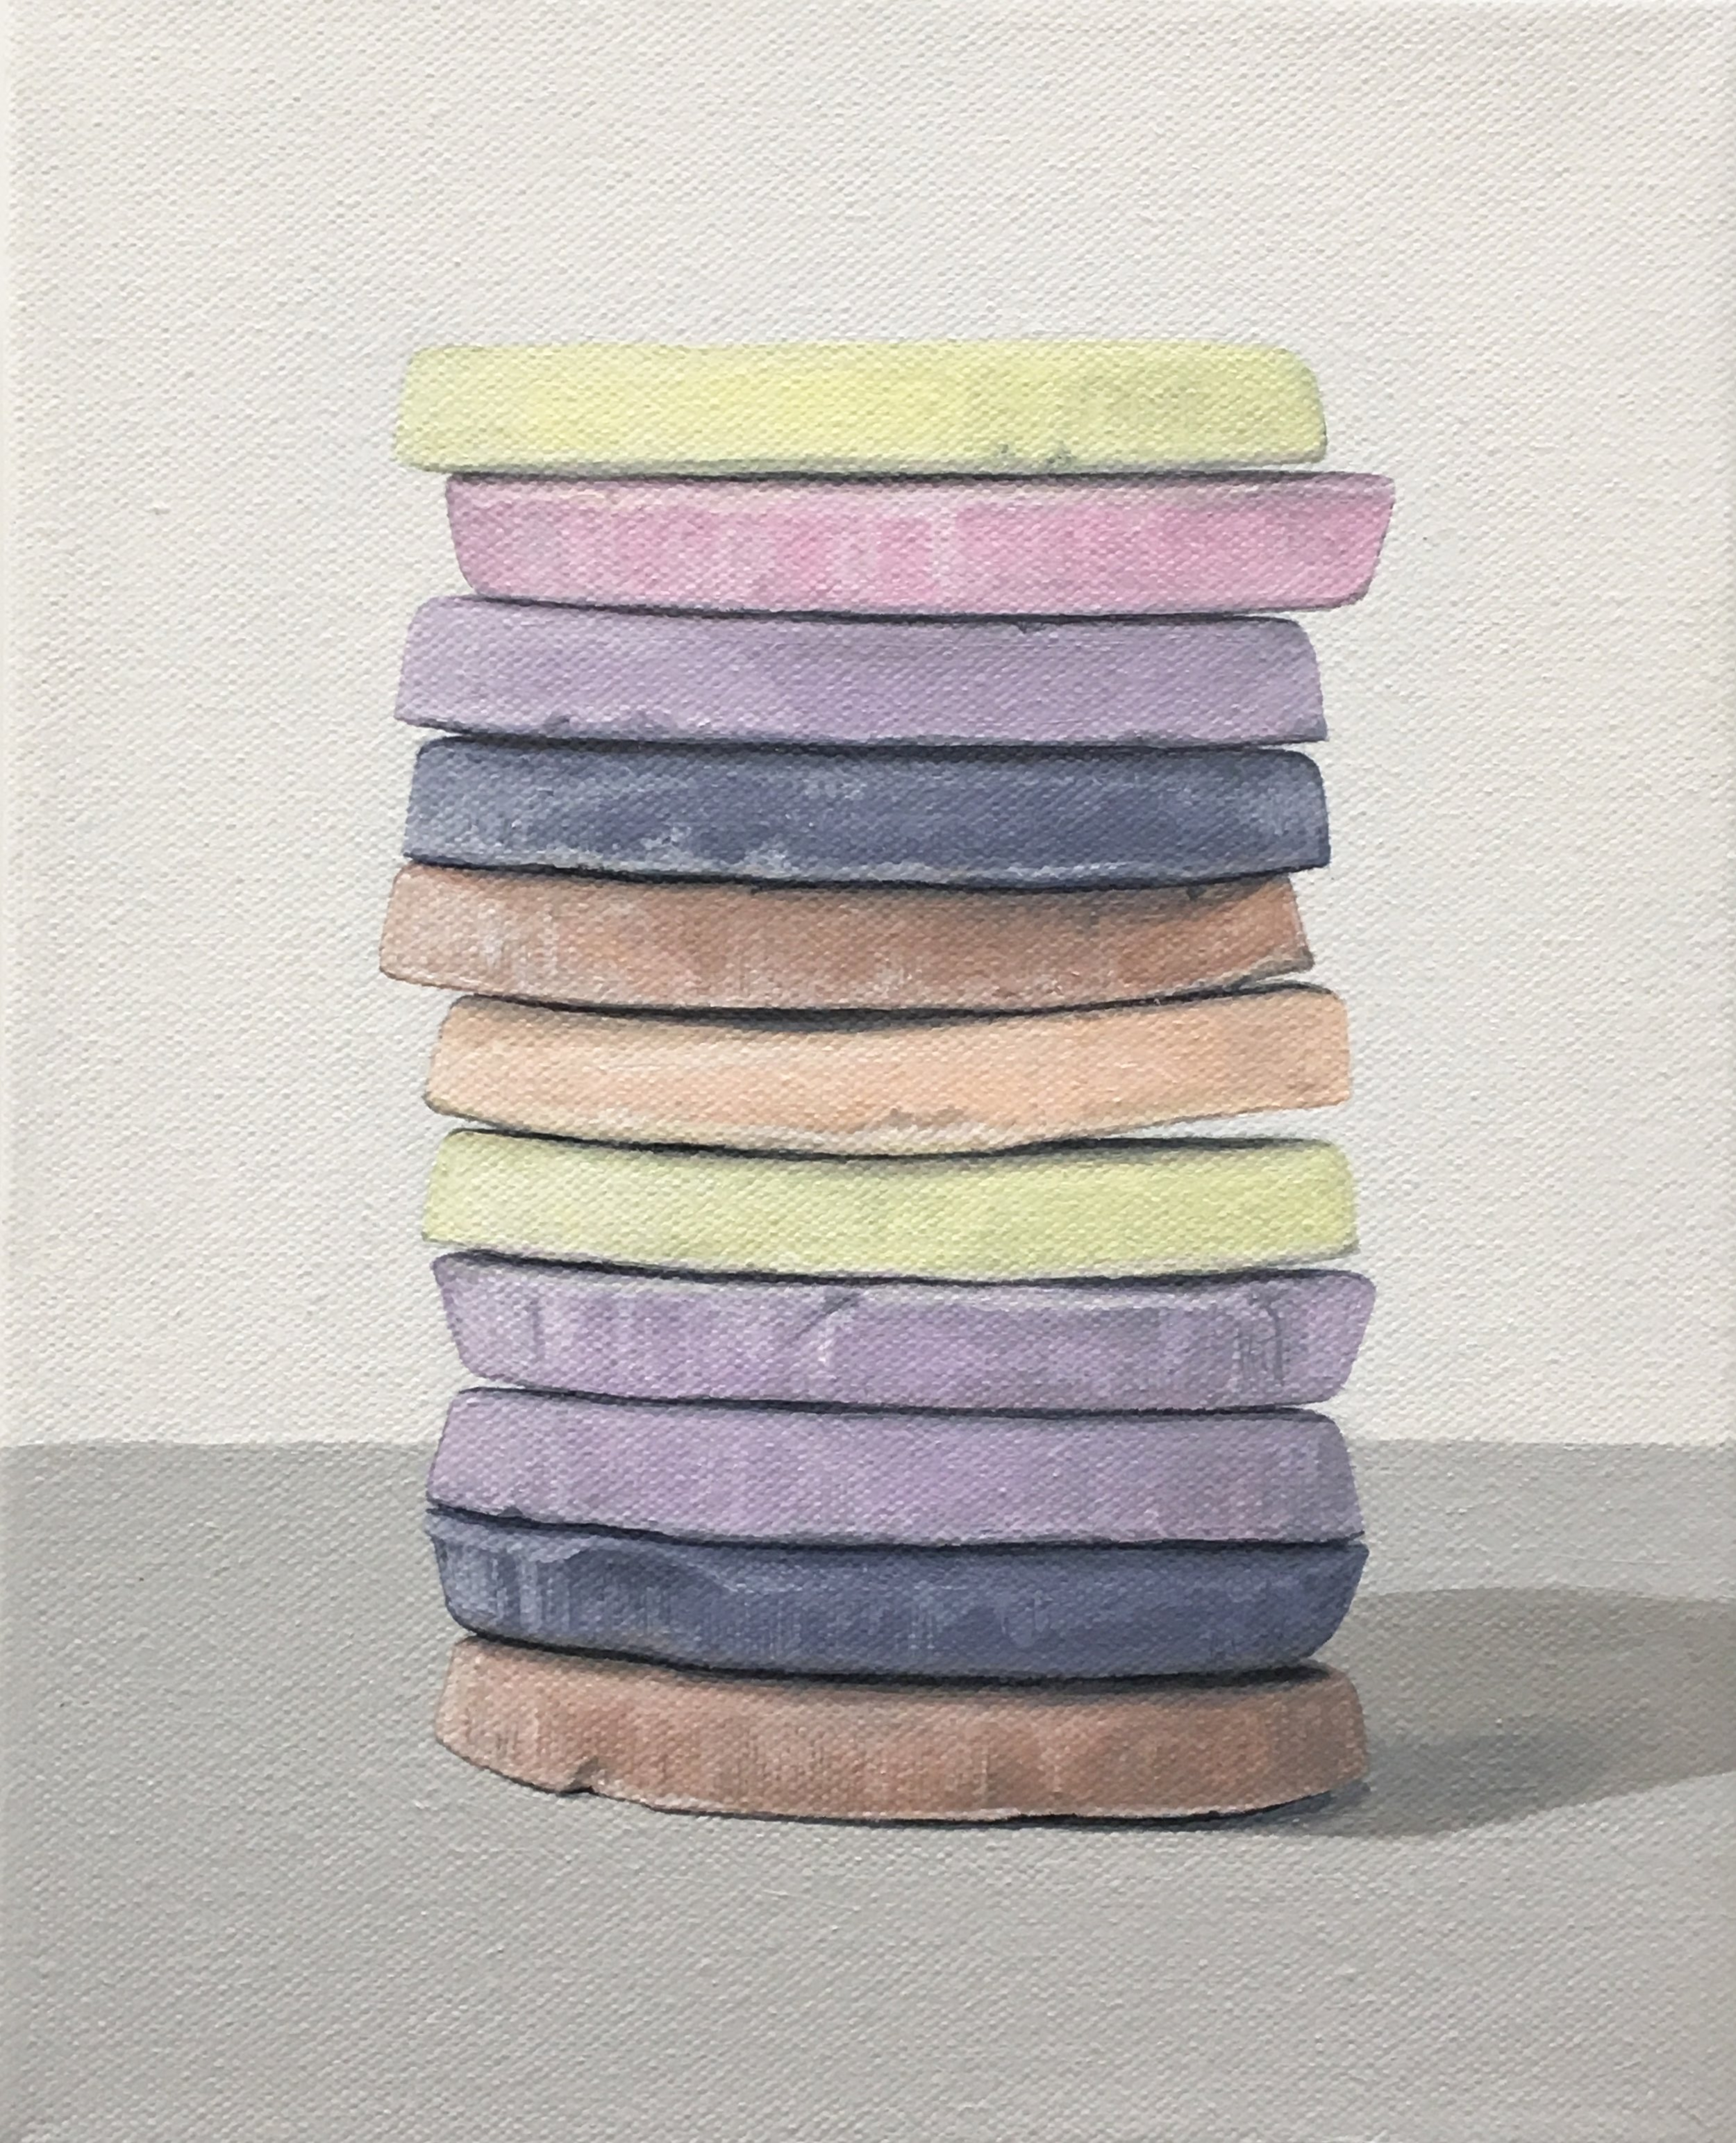 """Totem: Necco Wafer II  This little candy stacks is built from 'An American Classic' candy, the Necco Wafer. As a culture we are generally attracted to these charming colors, but once the candy is experienced as a food there is often a mismatch between its attractiveness and its taste. This work explores the occurrence of the incongruity of appearance and experience.  8"""" x 10"""" gallery wrapped canvas  $250.00"""